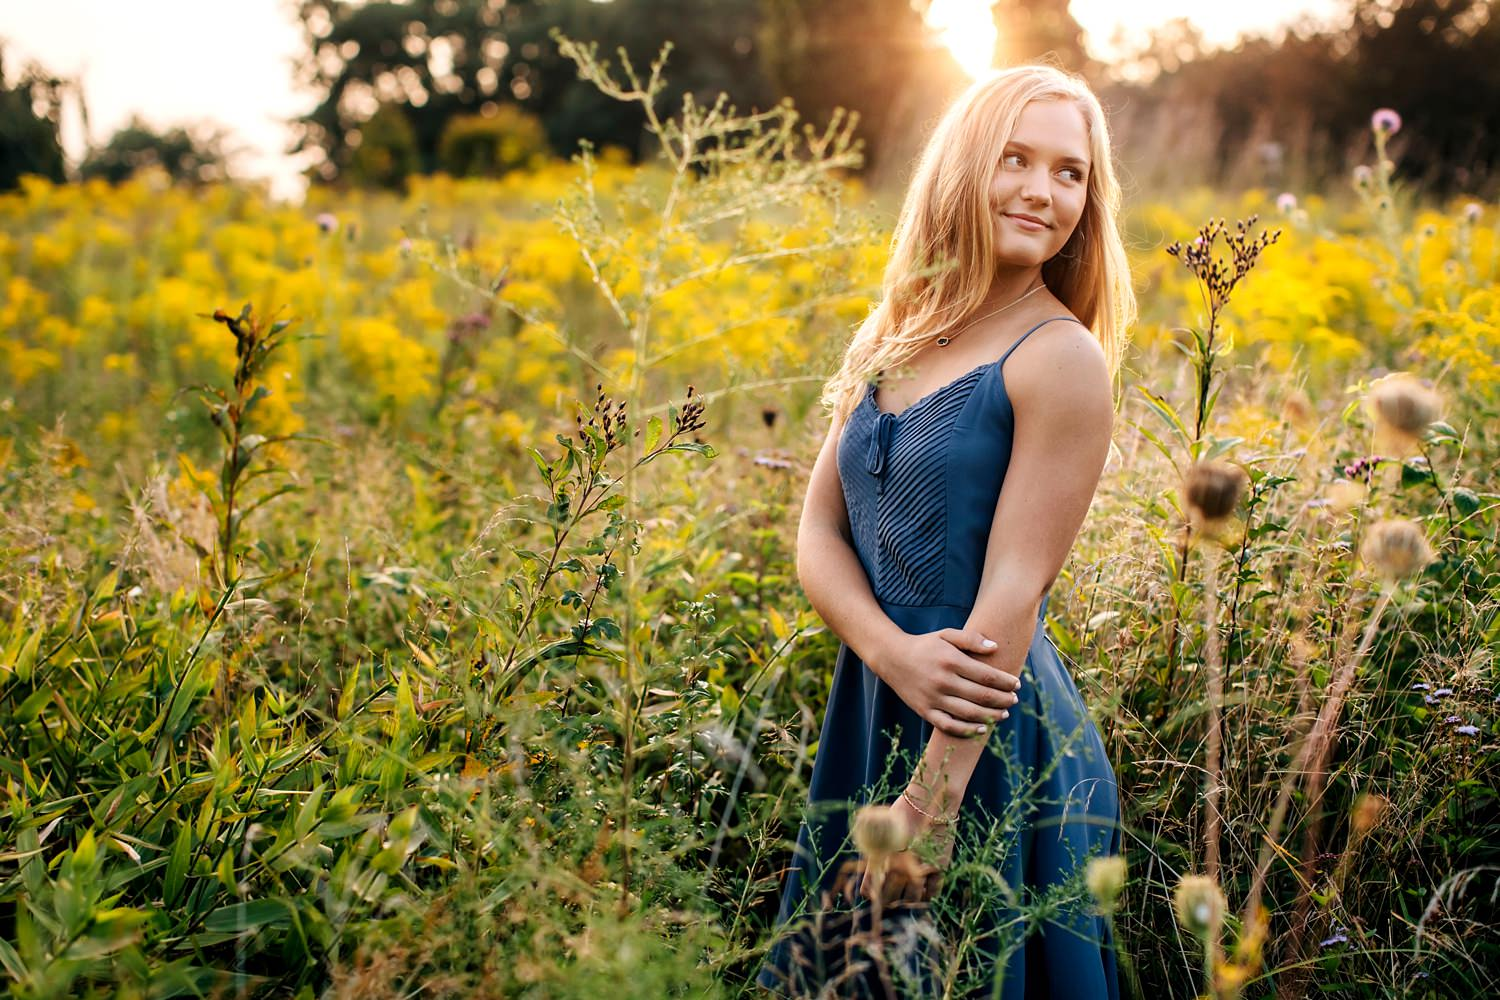 girl standing in goldenrod field during golden hour for natural senior portraits by sara devere formerly sara long photography